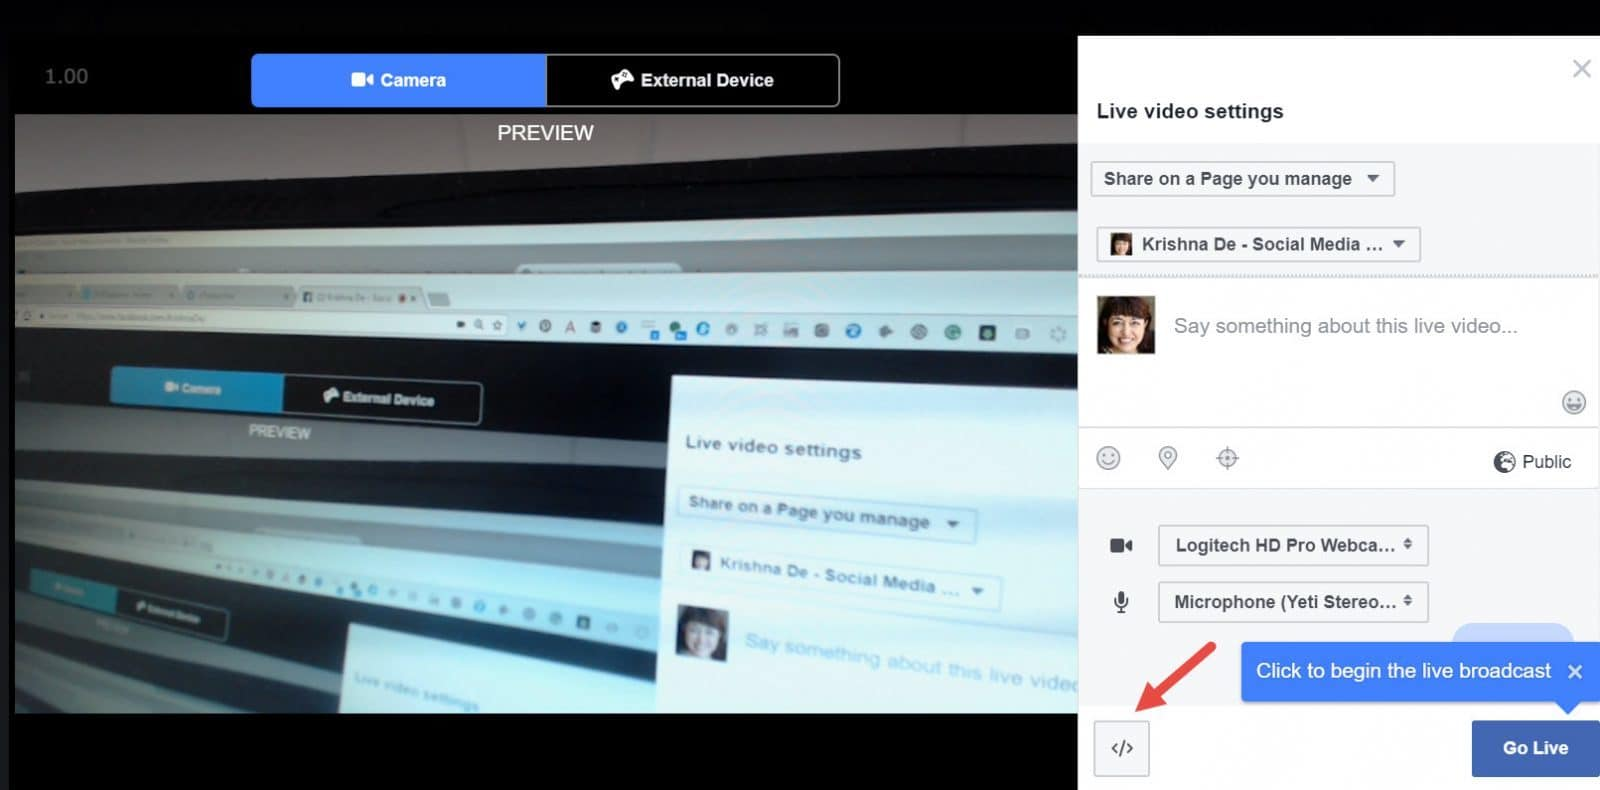 Start a live video on Google Chrome for your business page from desktop access the embed code